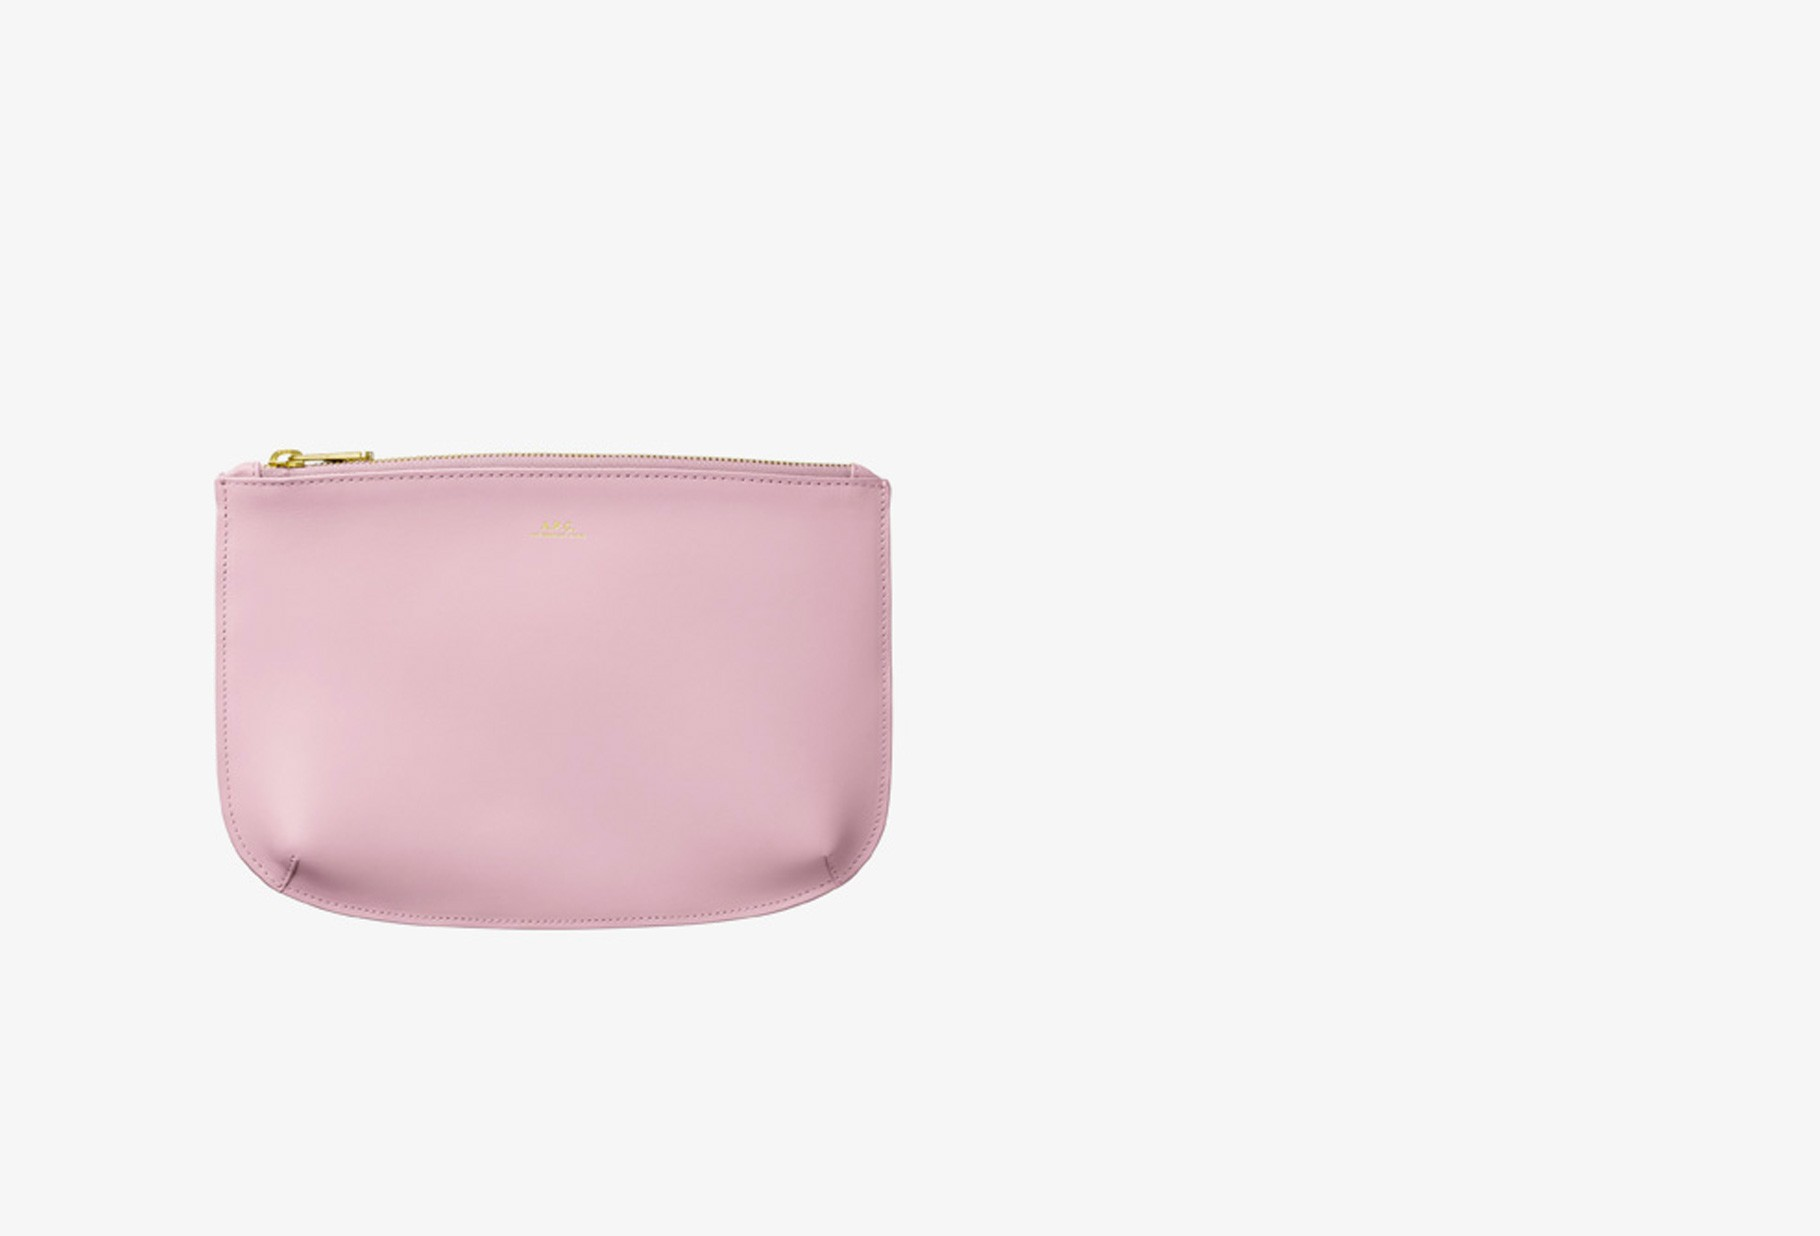 A.P.C. FOR WOMAN / Pochette sarah Rose pale